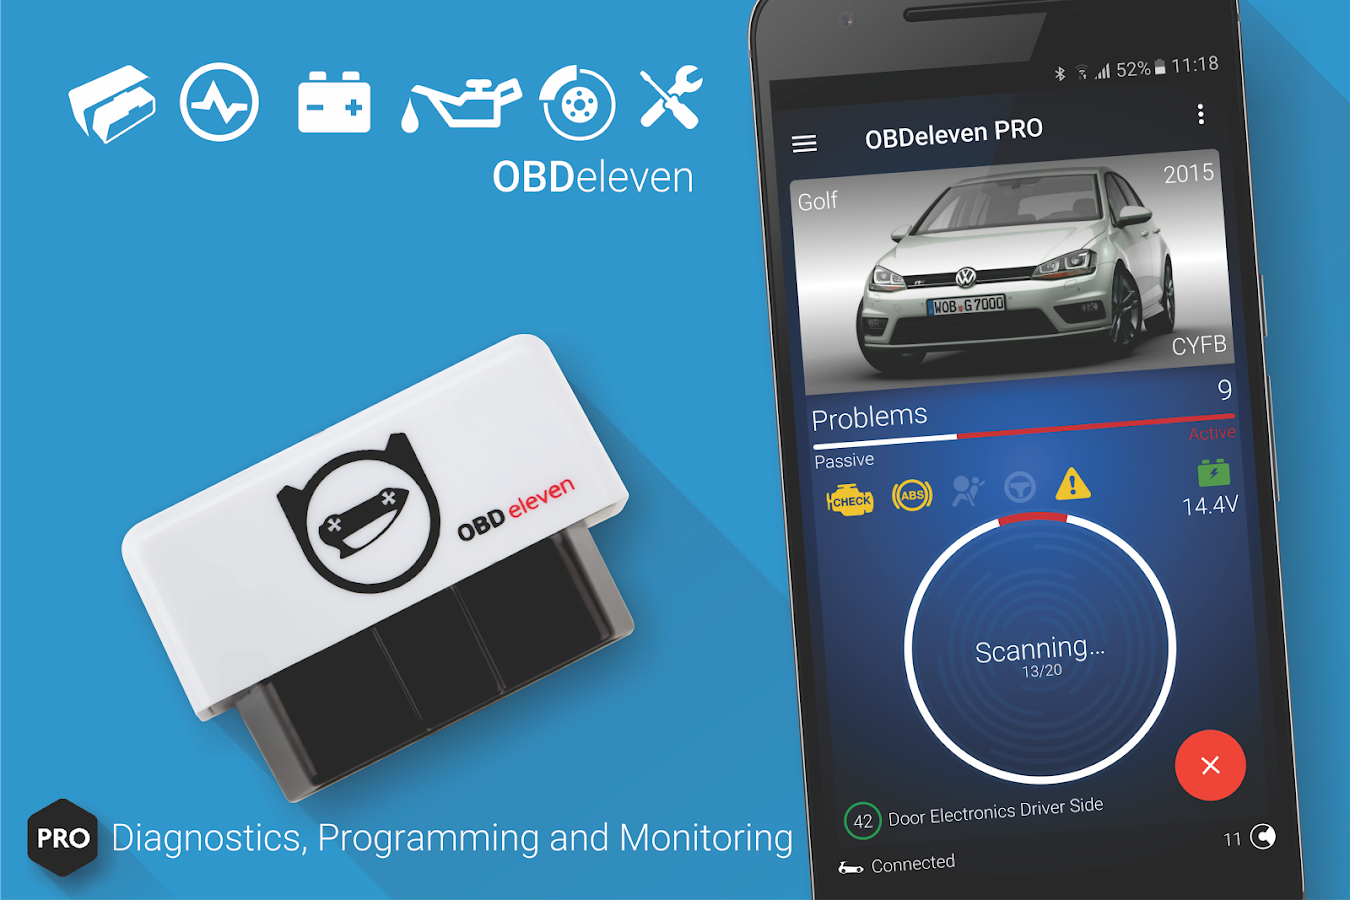 obdeleven pro car diagnostics app vag obd2 scanner